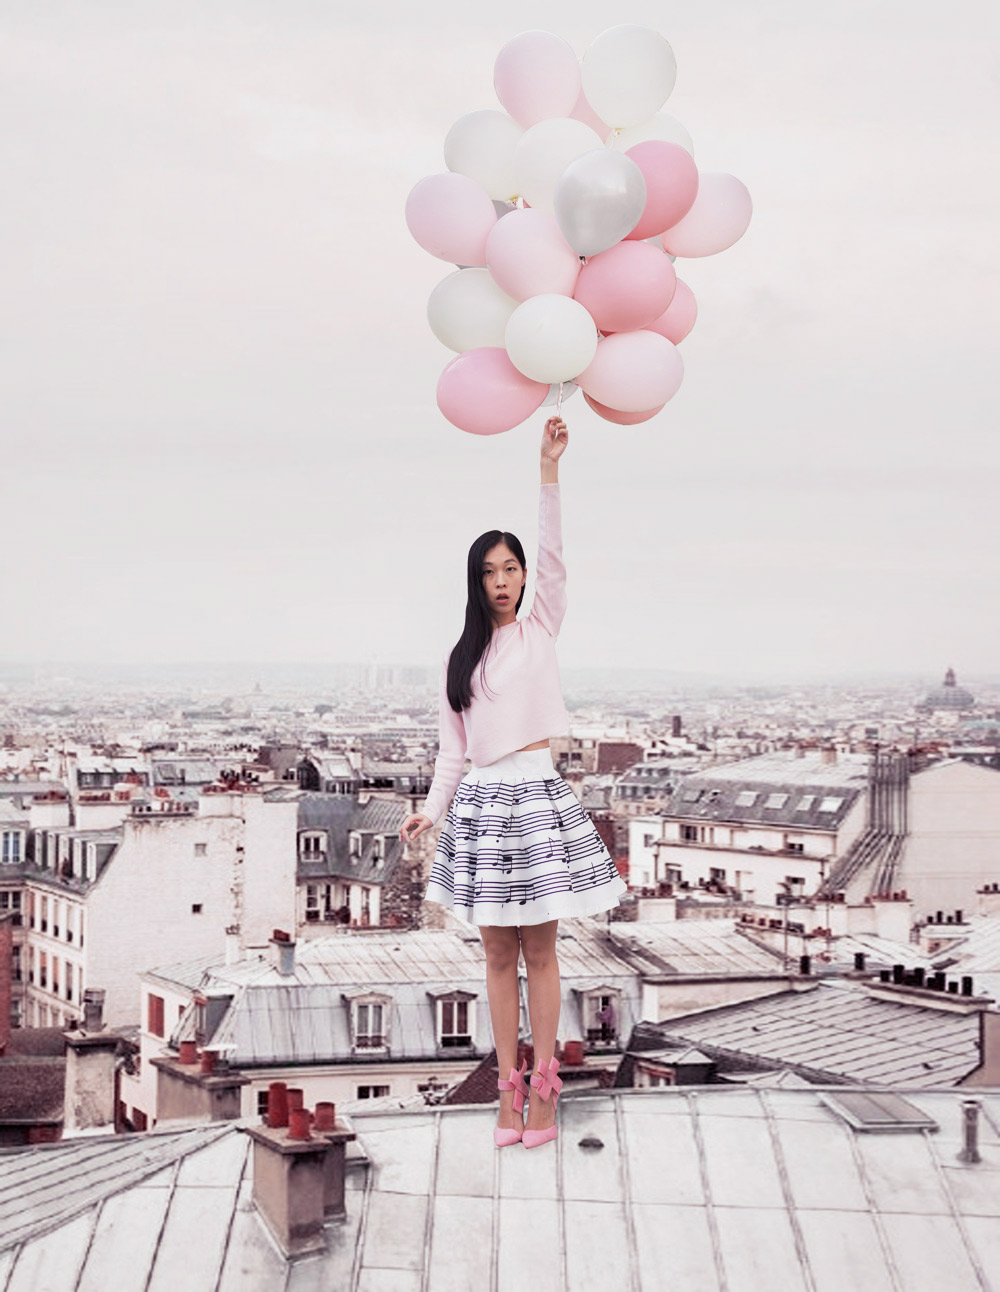 balloon flying photoshoot dior